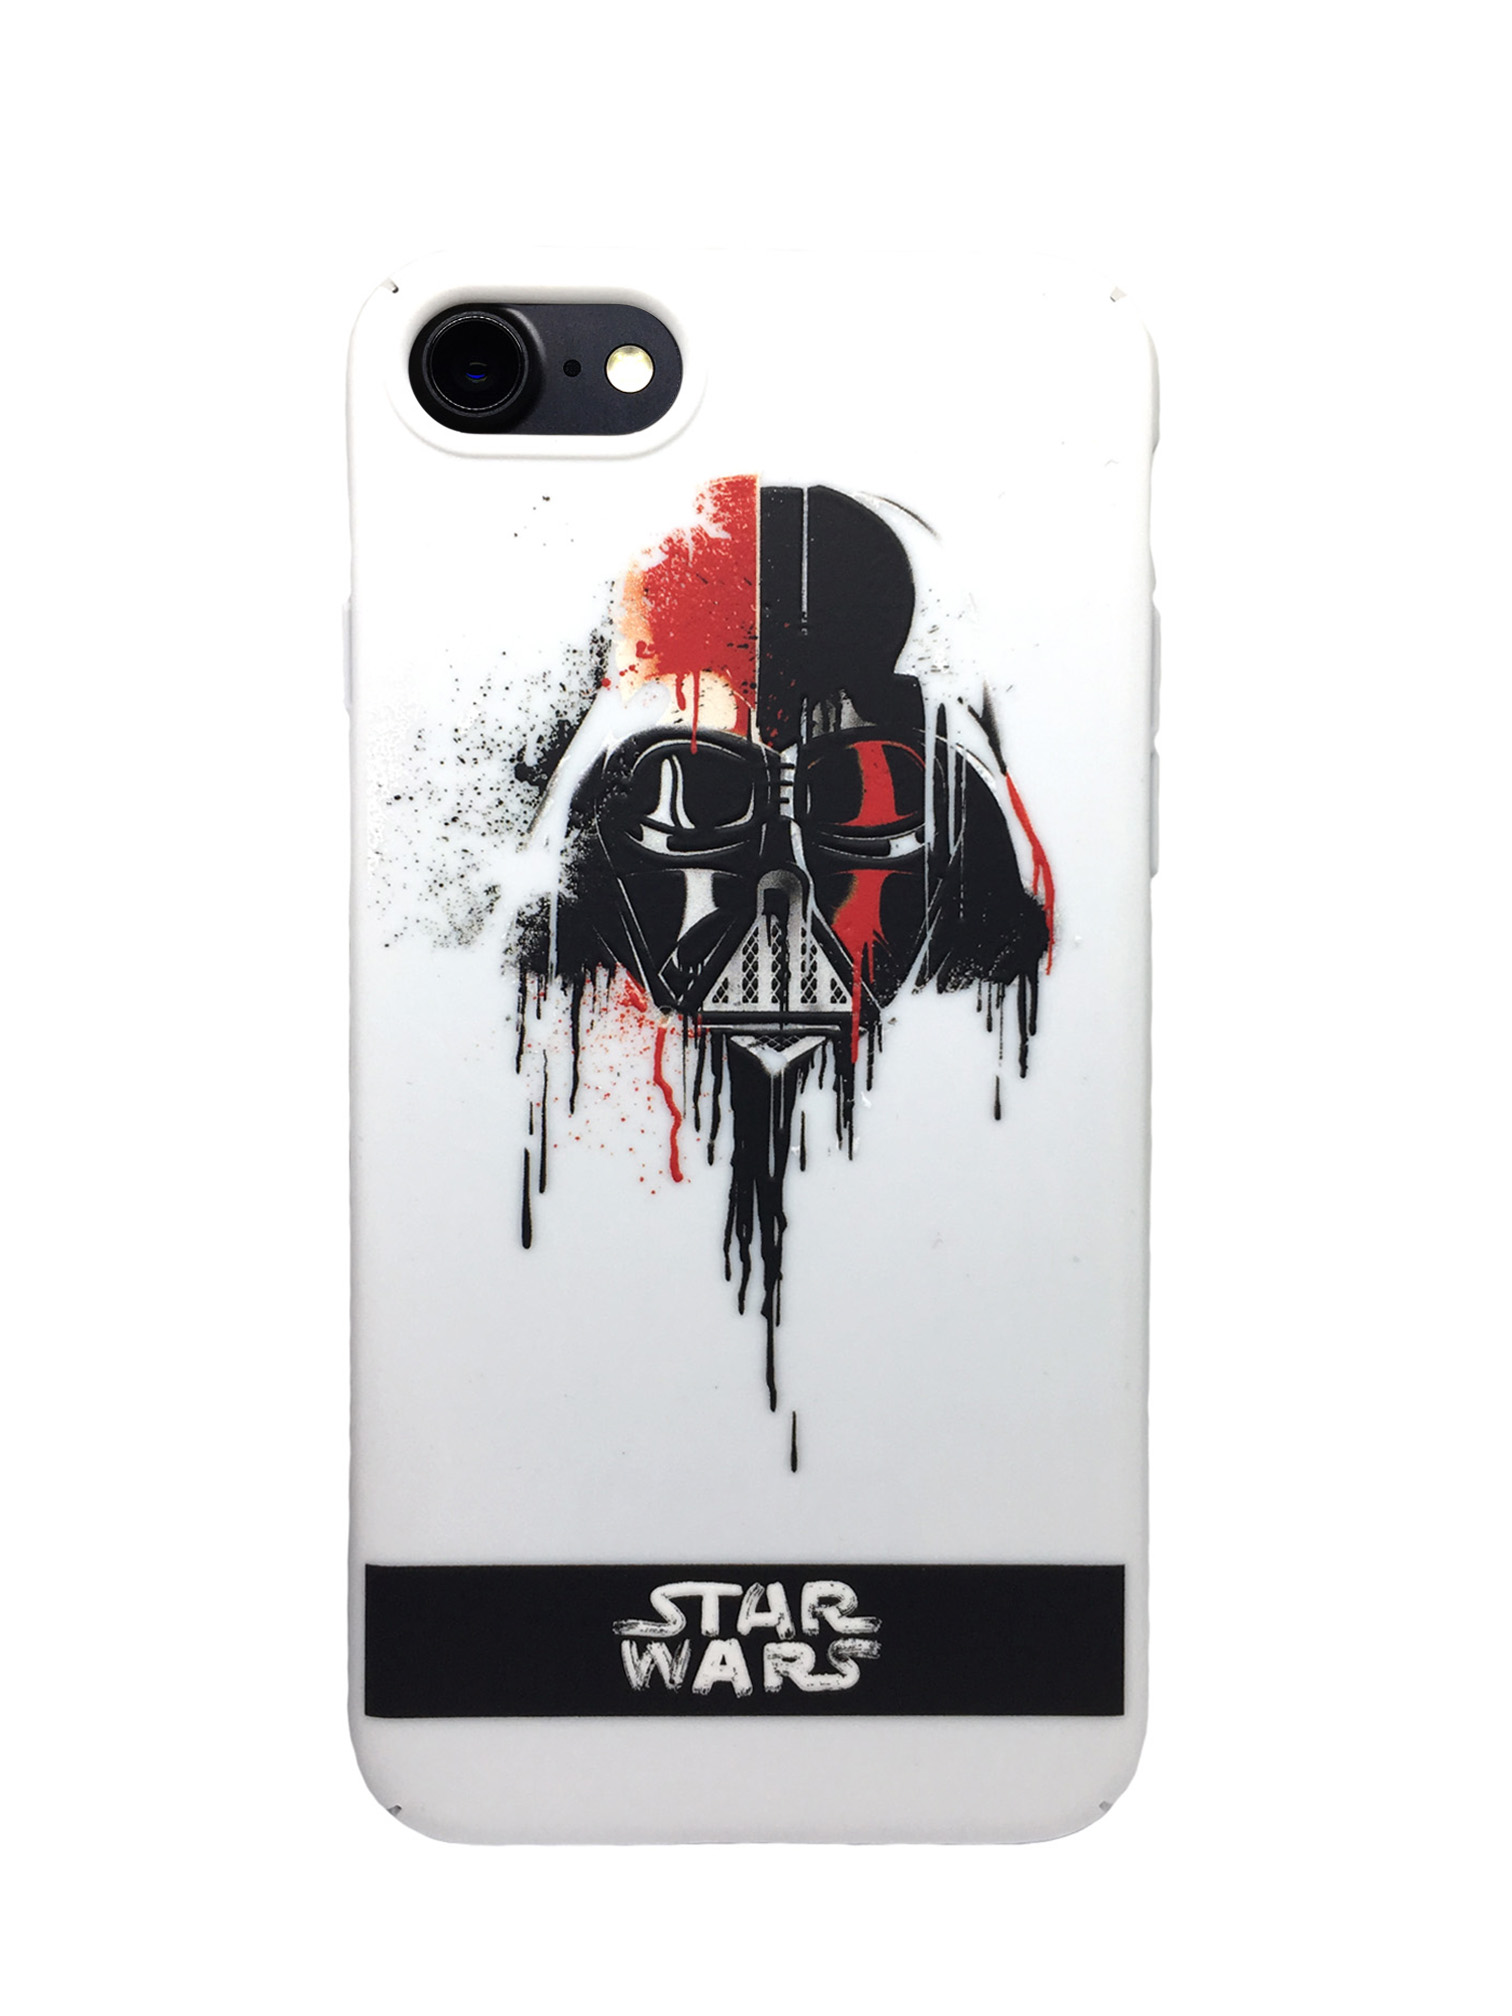 Купить Чехол Star Wars Вейдер шлем для iPhone 7/8 Plus в Сочи